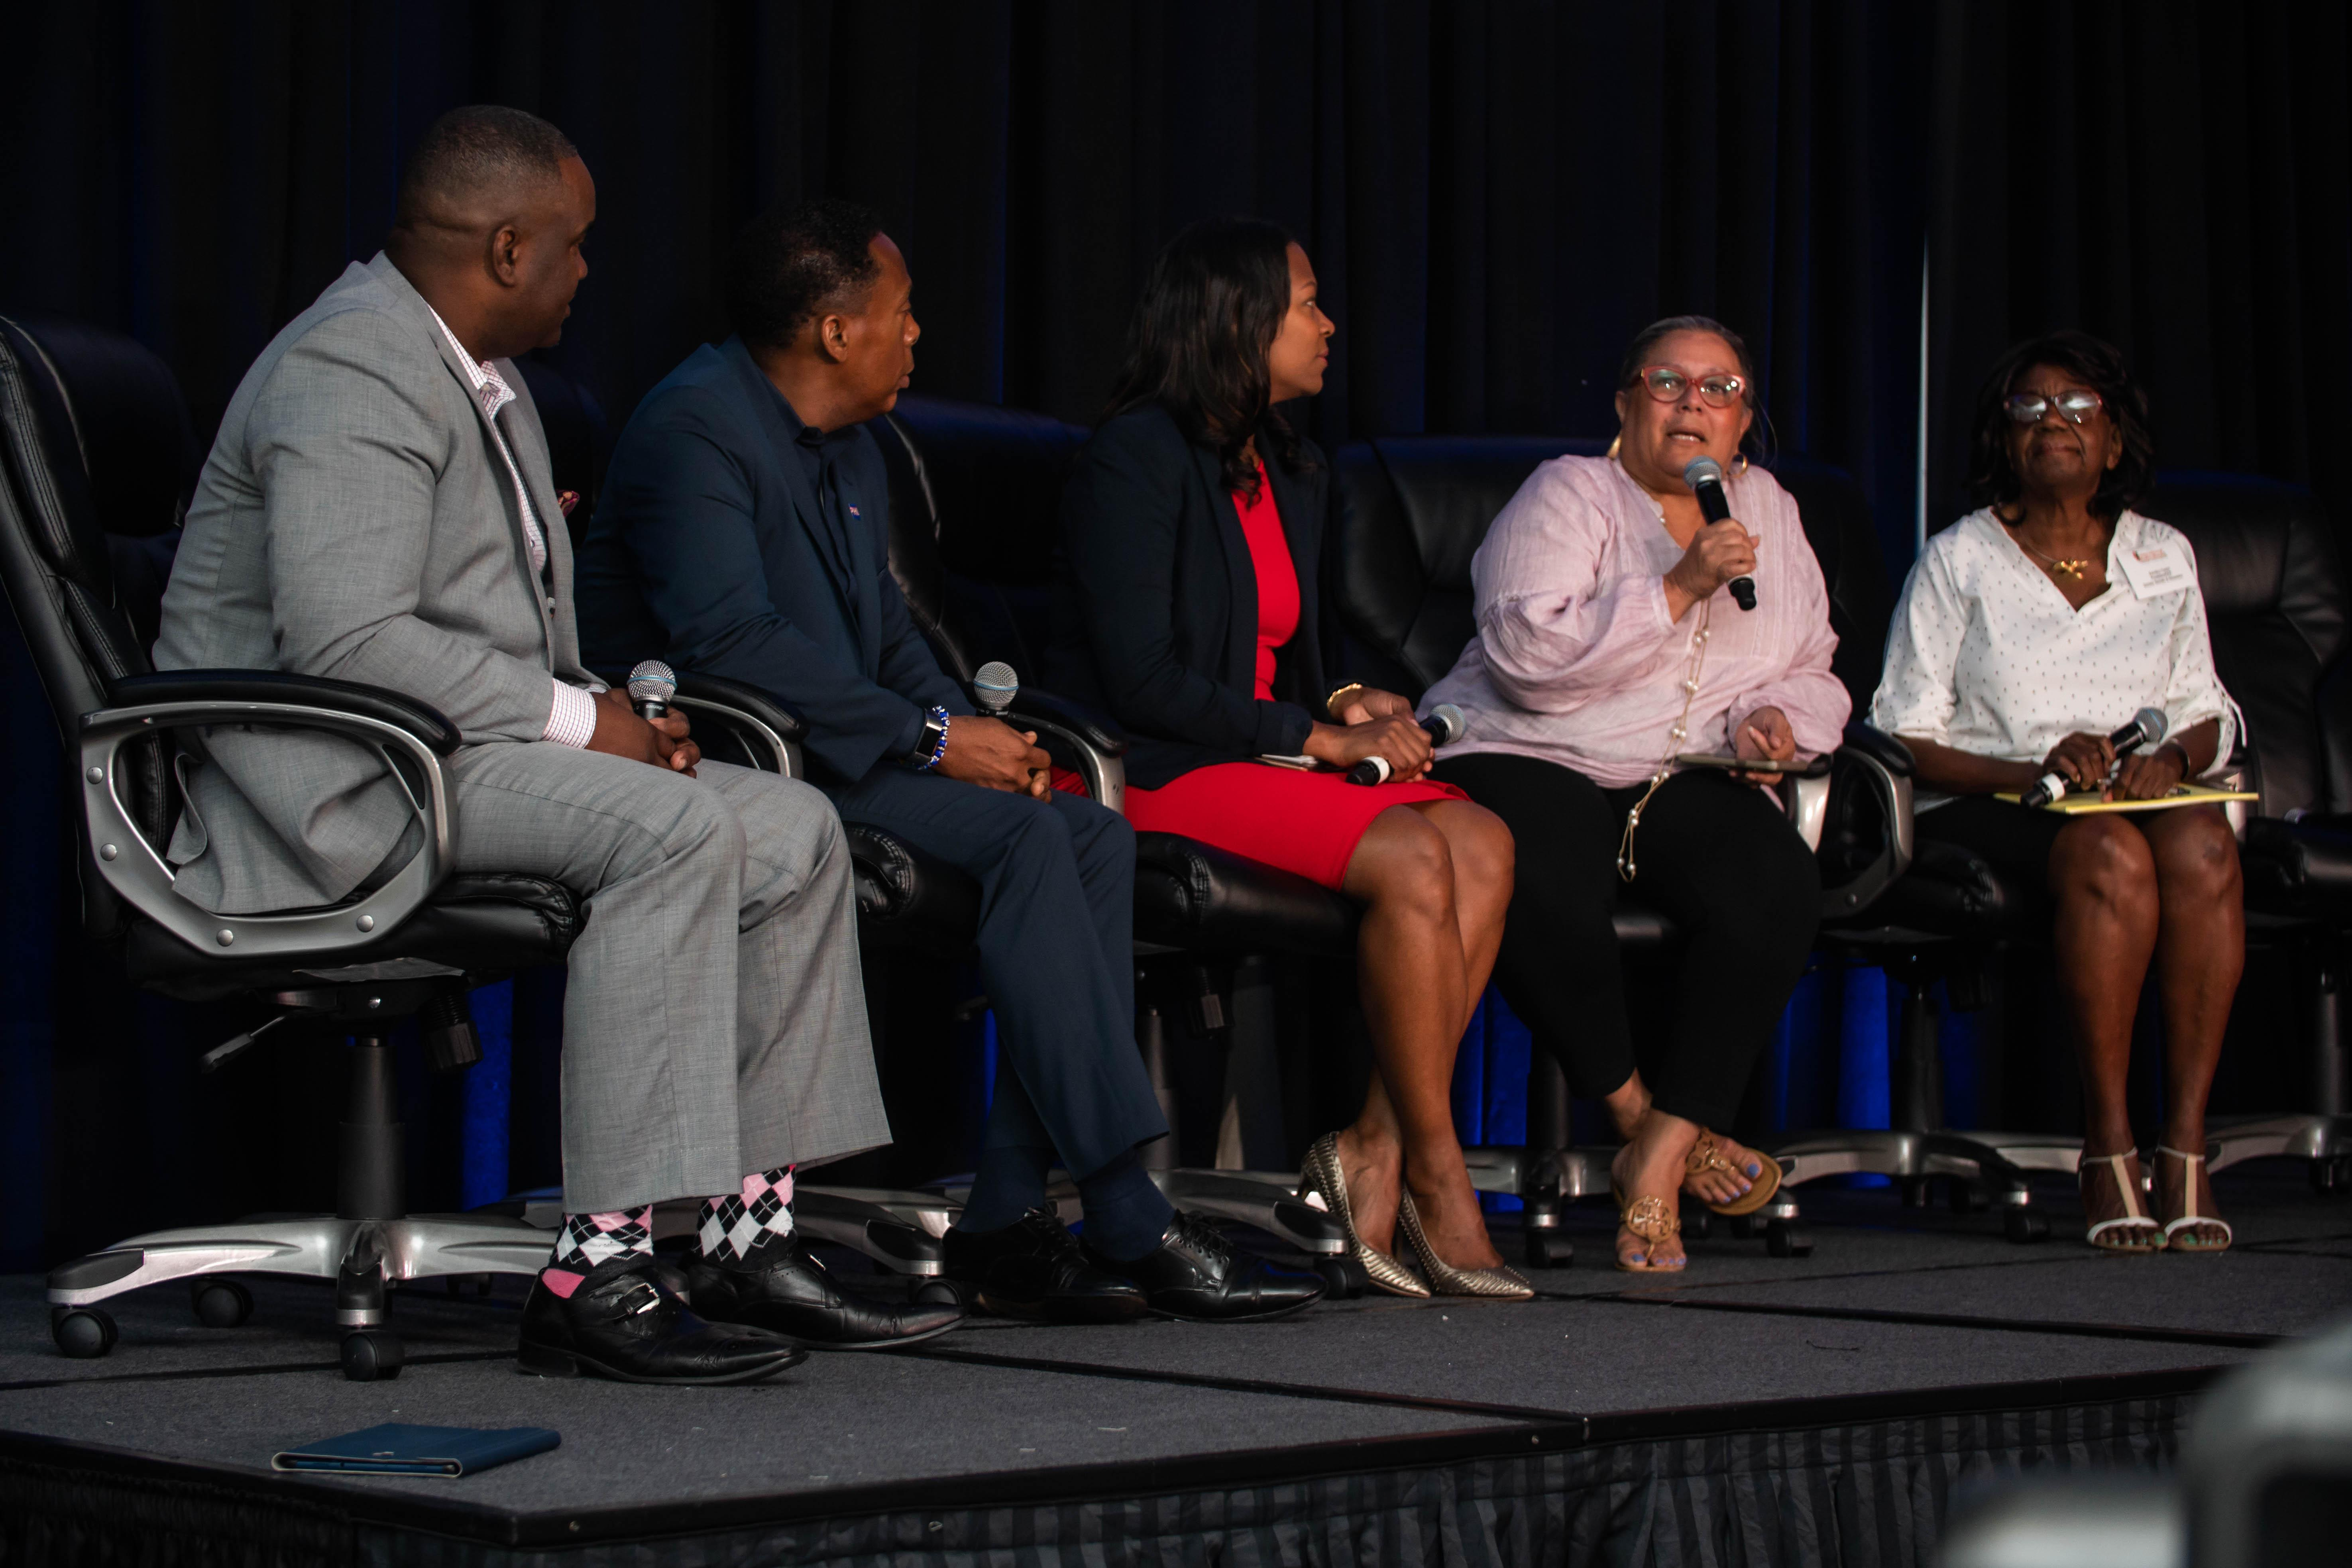 Janet Johnson, CEO and Executive Director of The Bahamas Tourism Development Corp (TDC), represented The Islands Of The Bahamas on a panel at the recent International Multicultural and Heritage Tourism Network Conference in Miami, Florida.  The topic of d